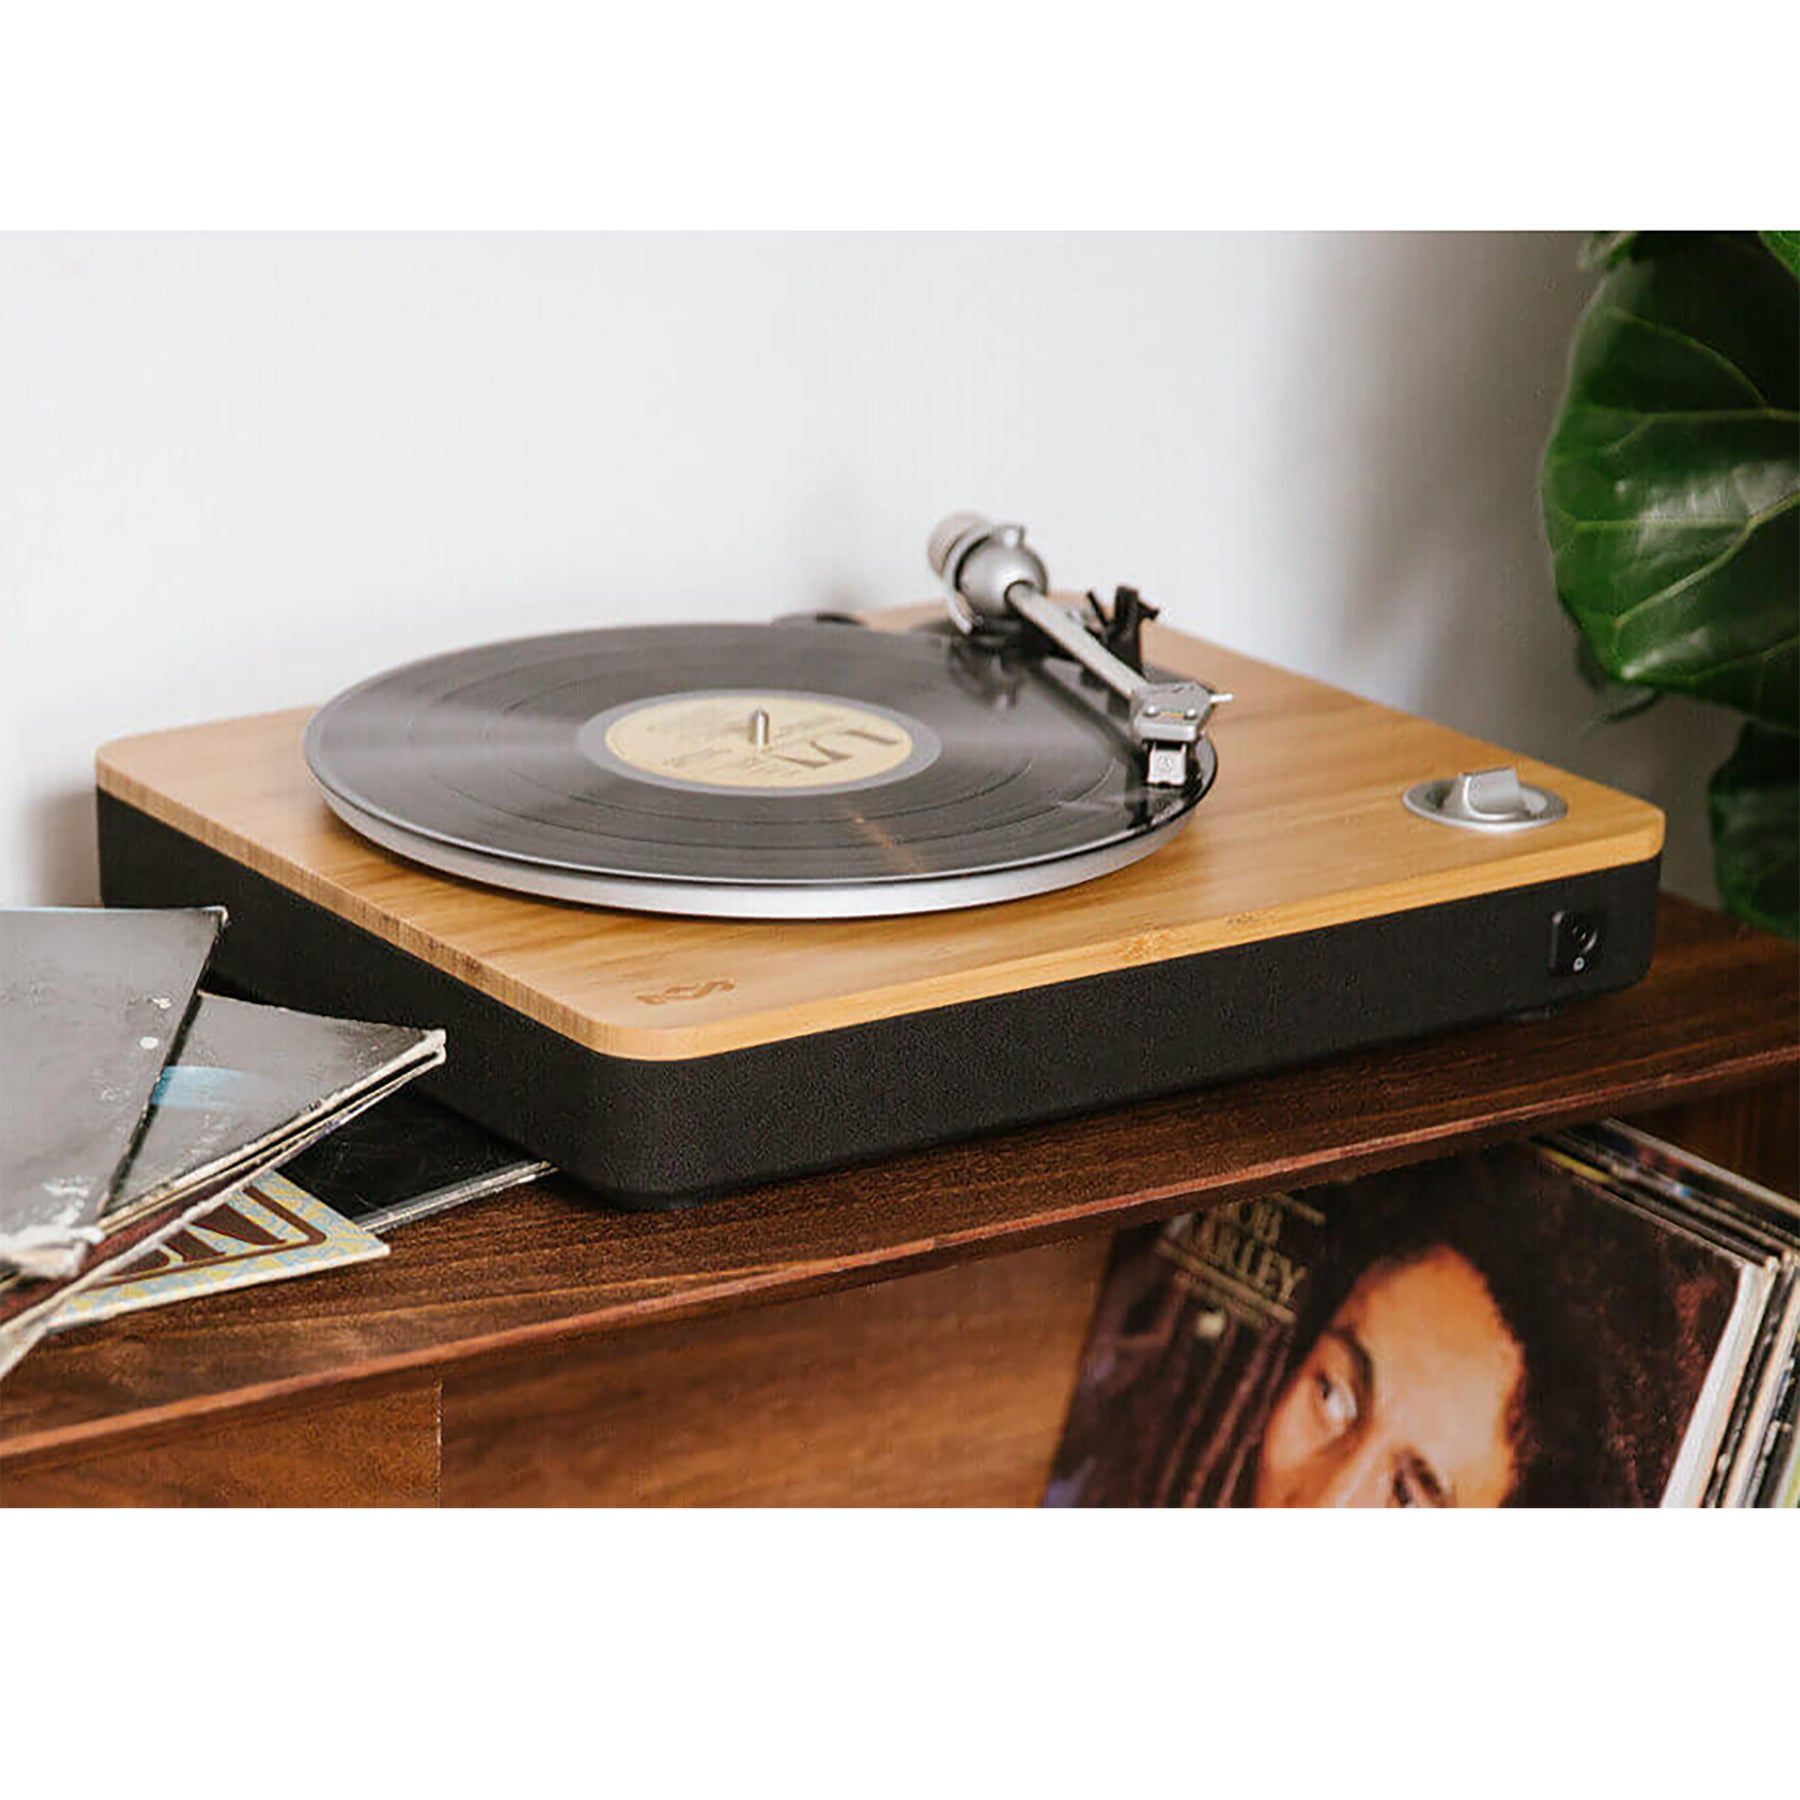 house of marley stir it up manual